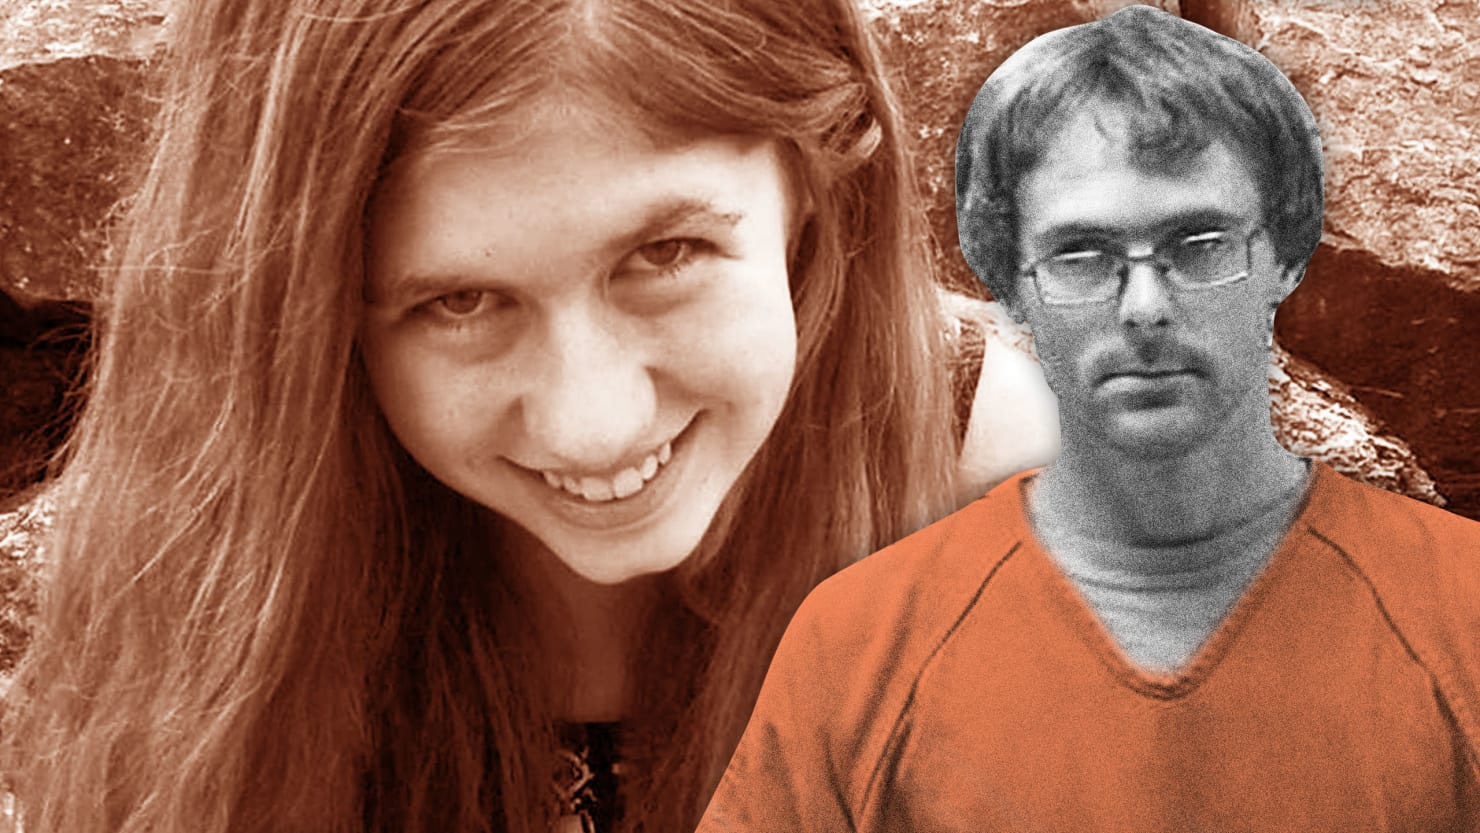 Jayme Closs Burglar Stole Missing Teens Underwear From Her Home